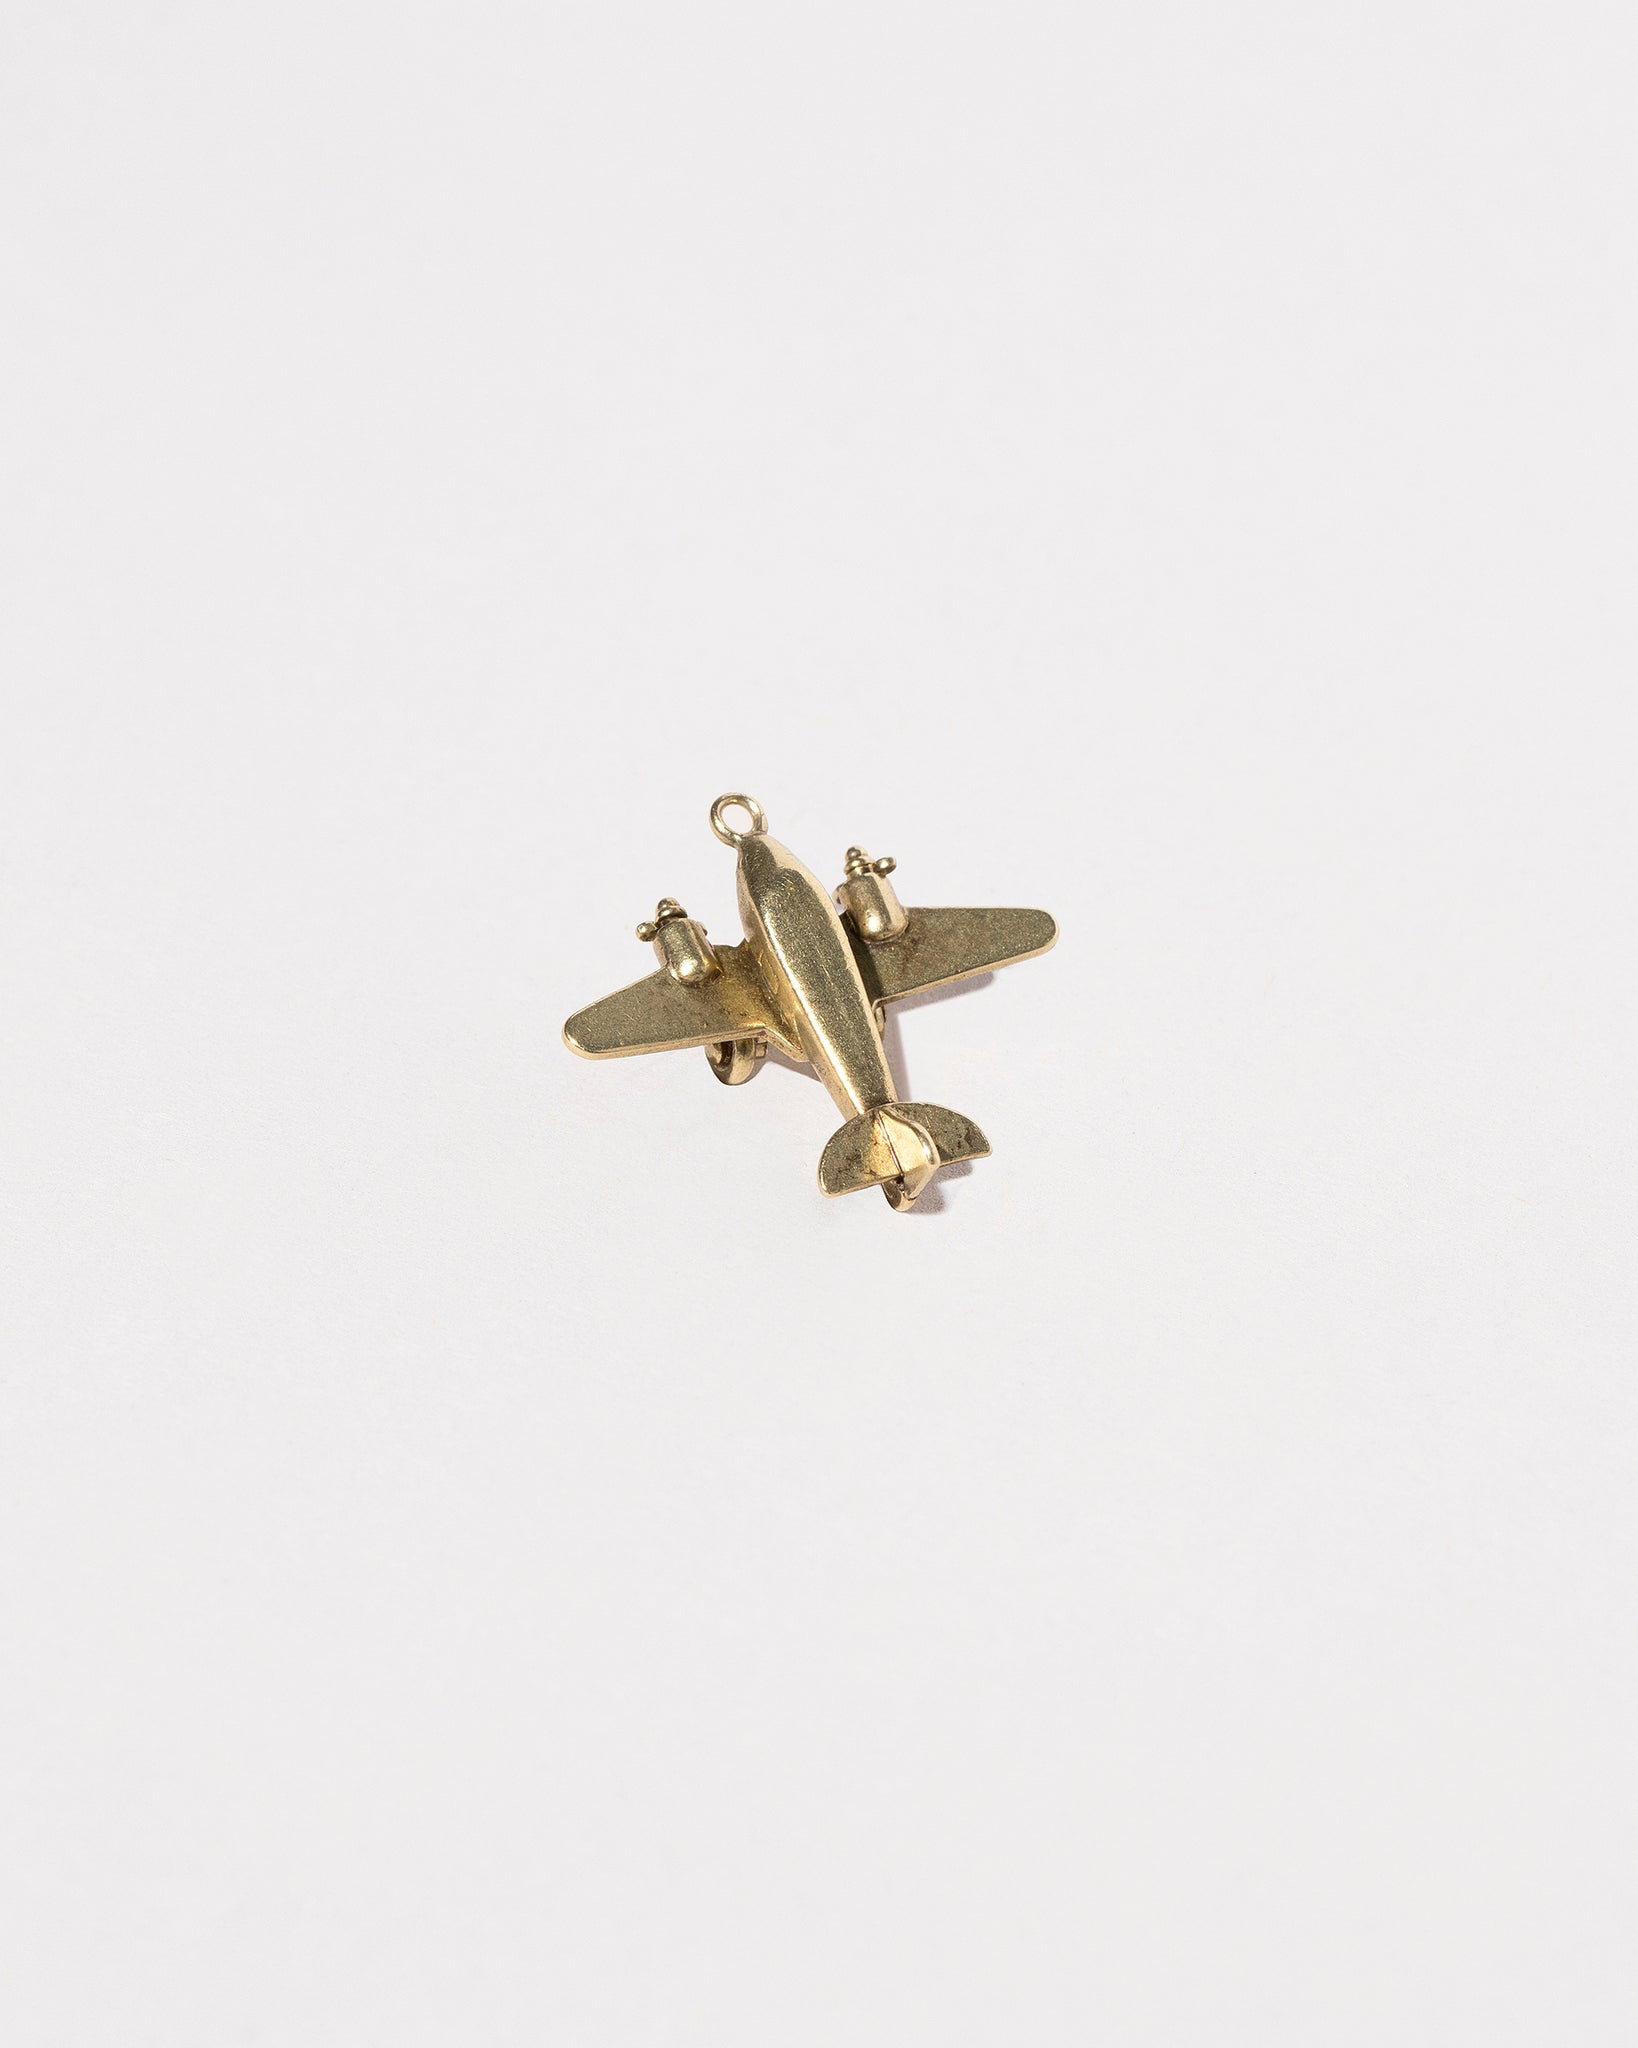 Airplane Charm on light color background